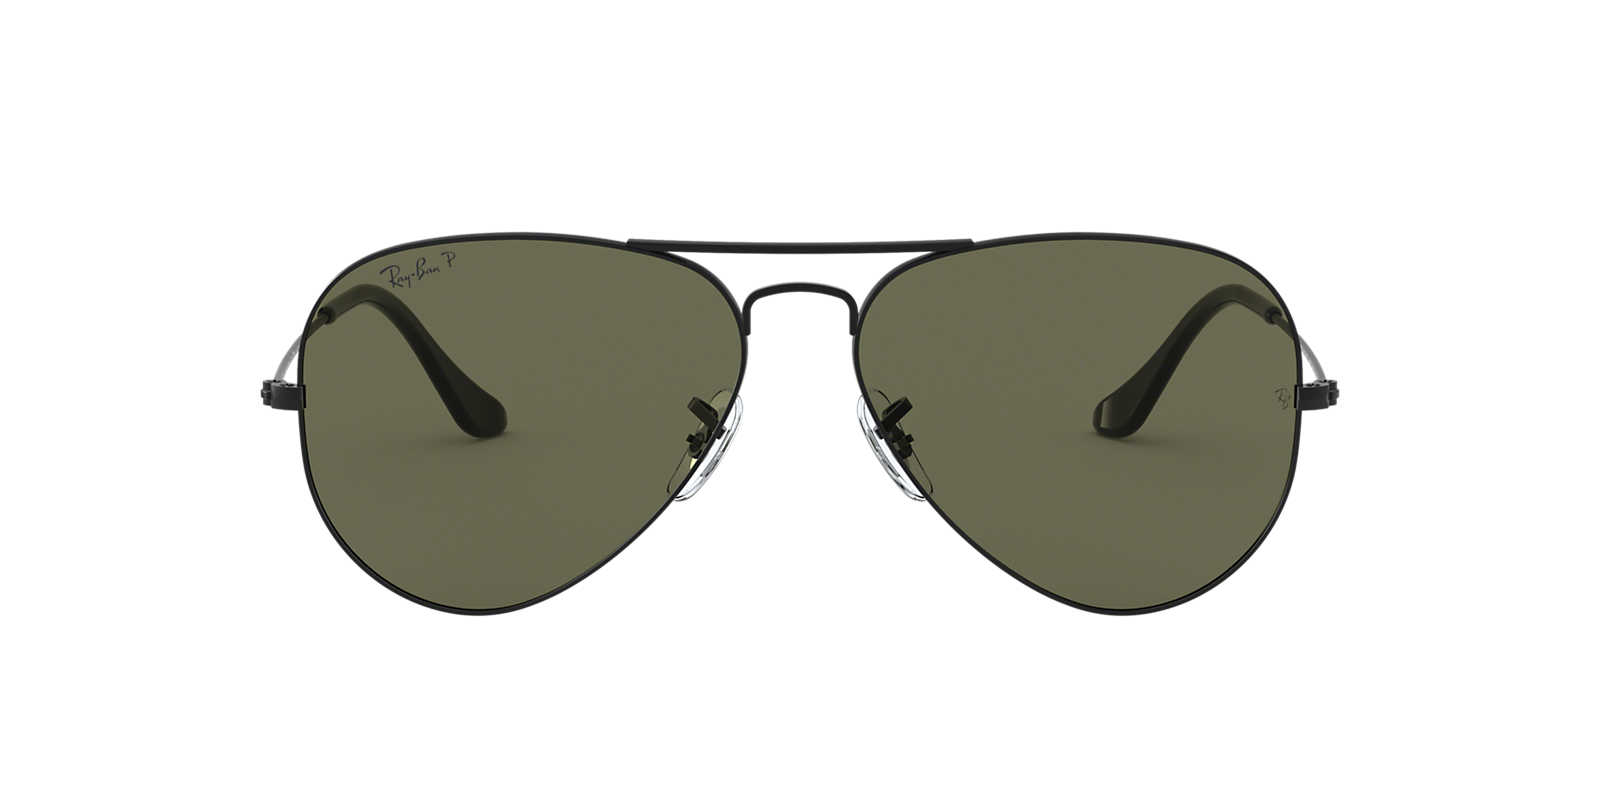 ray ban aviator matte black  Ray-Ban RB3025 58 ORIGINAL AVIATOR 58 Green \u0026 Black Matte ...